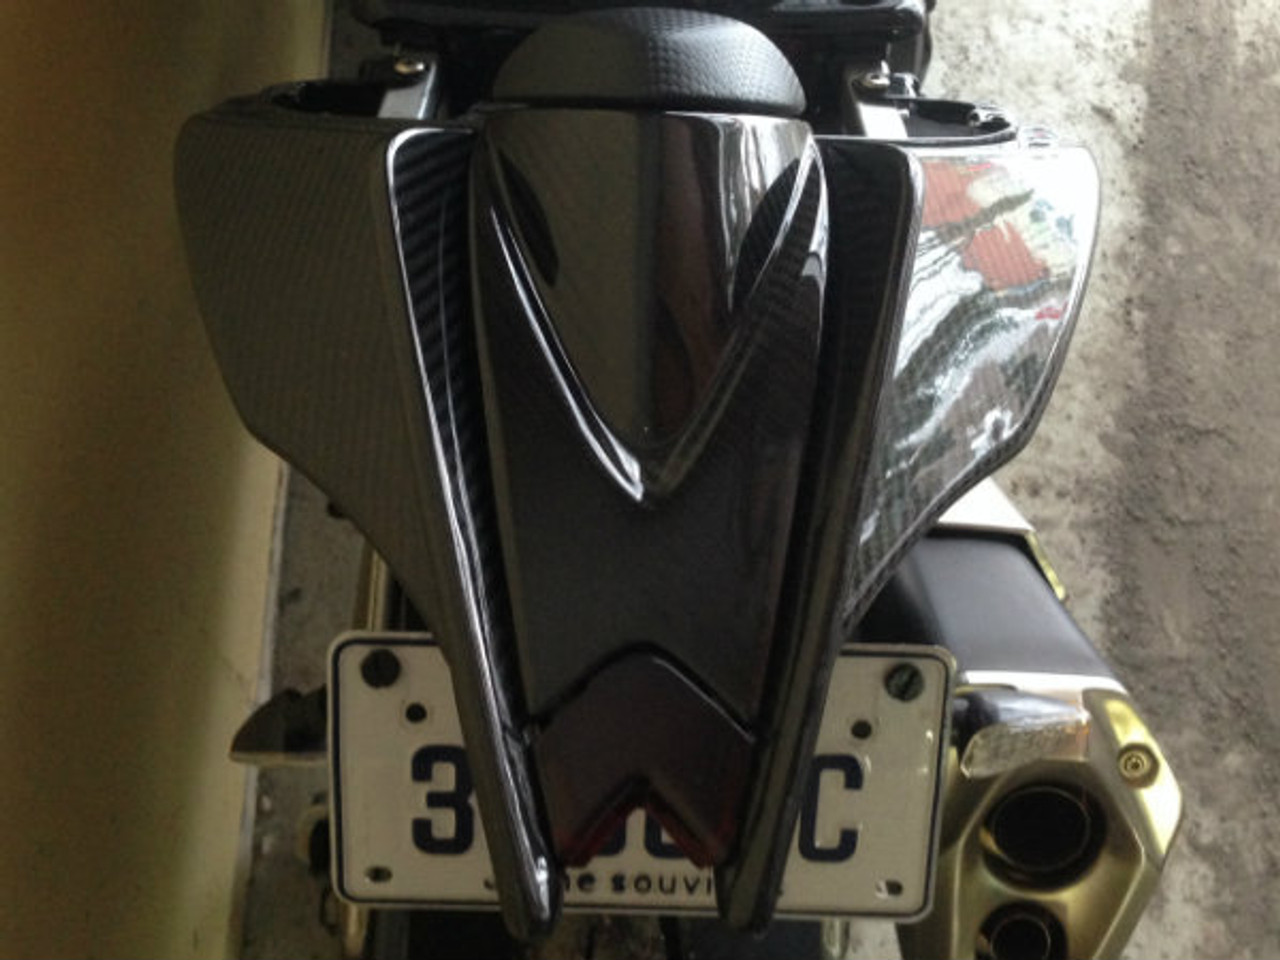 Glossy Twill Weave Carbon Fiber Tail Fairings for Aprilia RSV4 2009+ installed top view